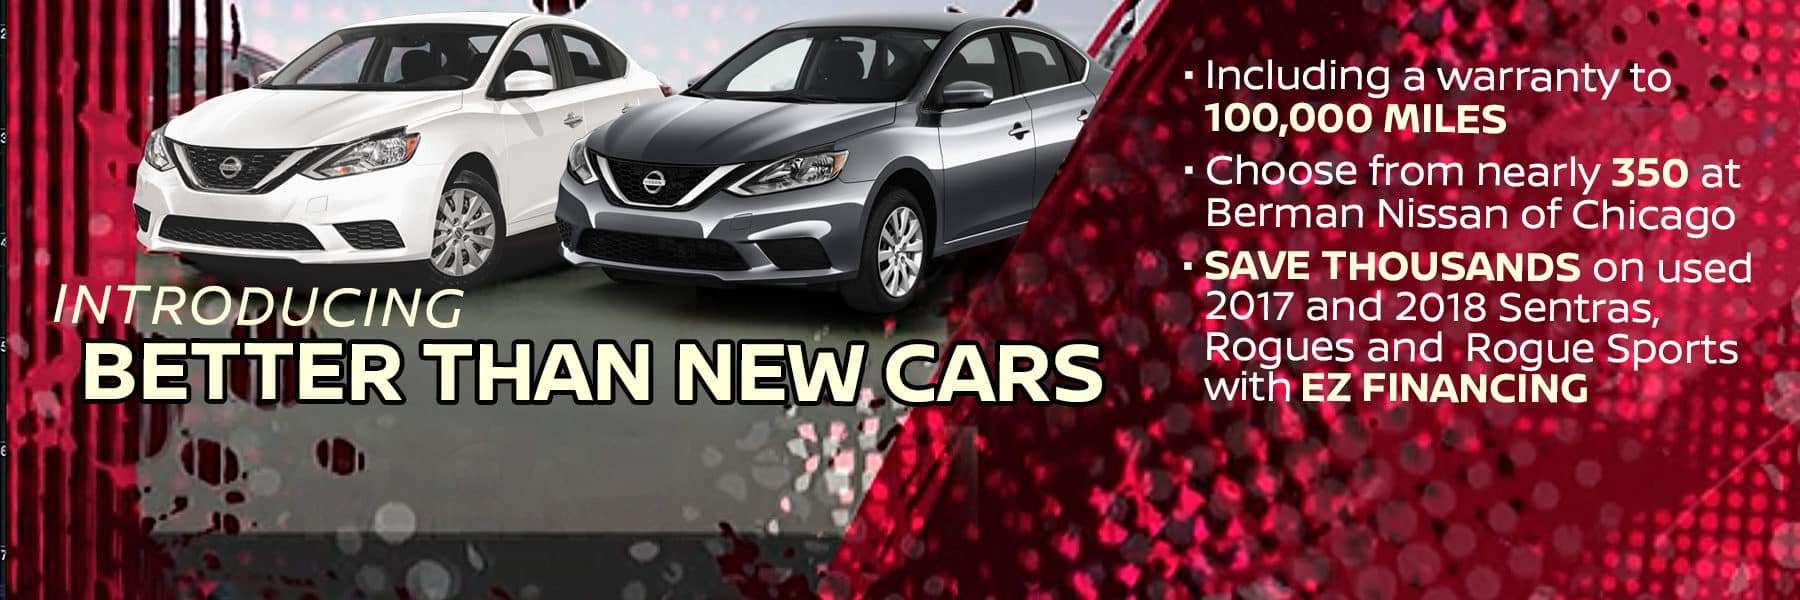 Introducing Better Than New Cars at Berman Nissan of Chicago!